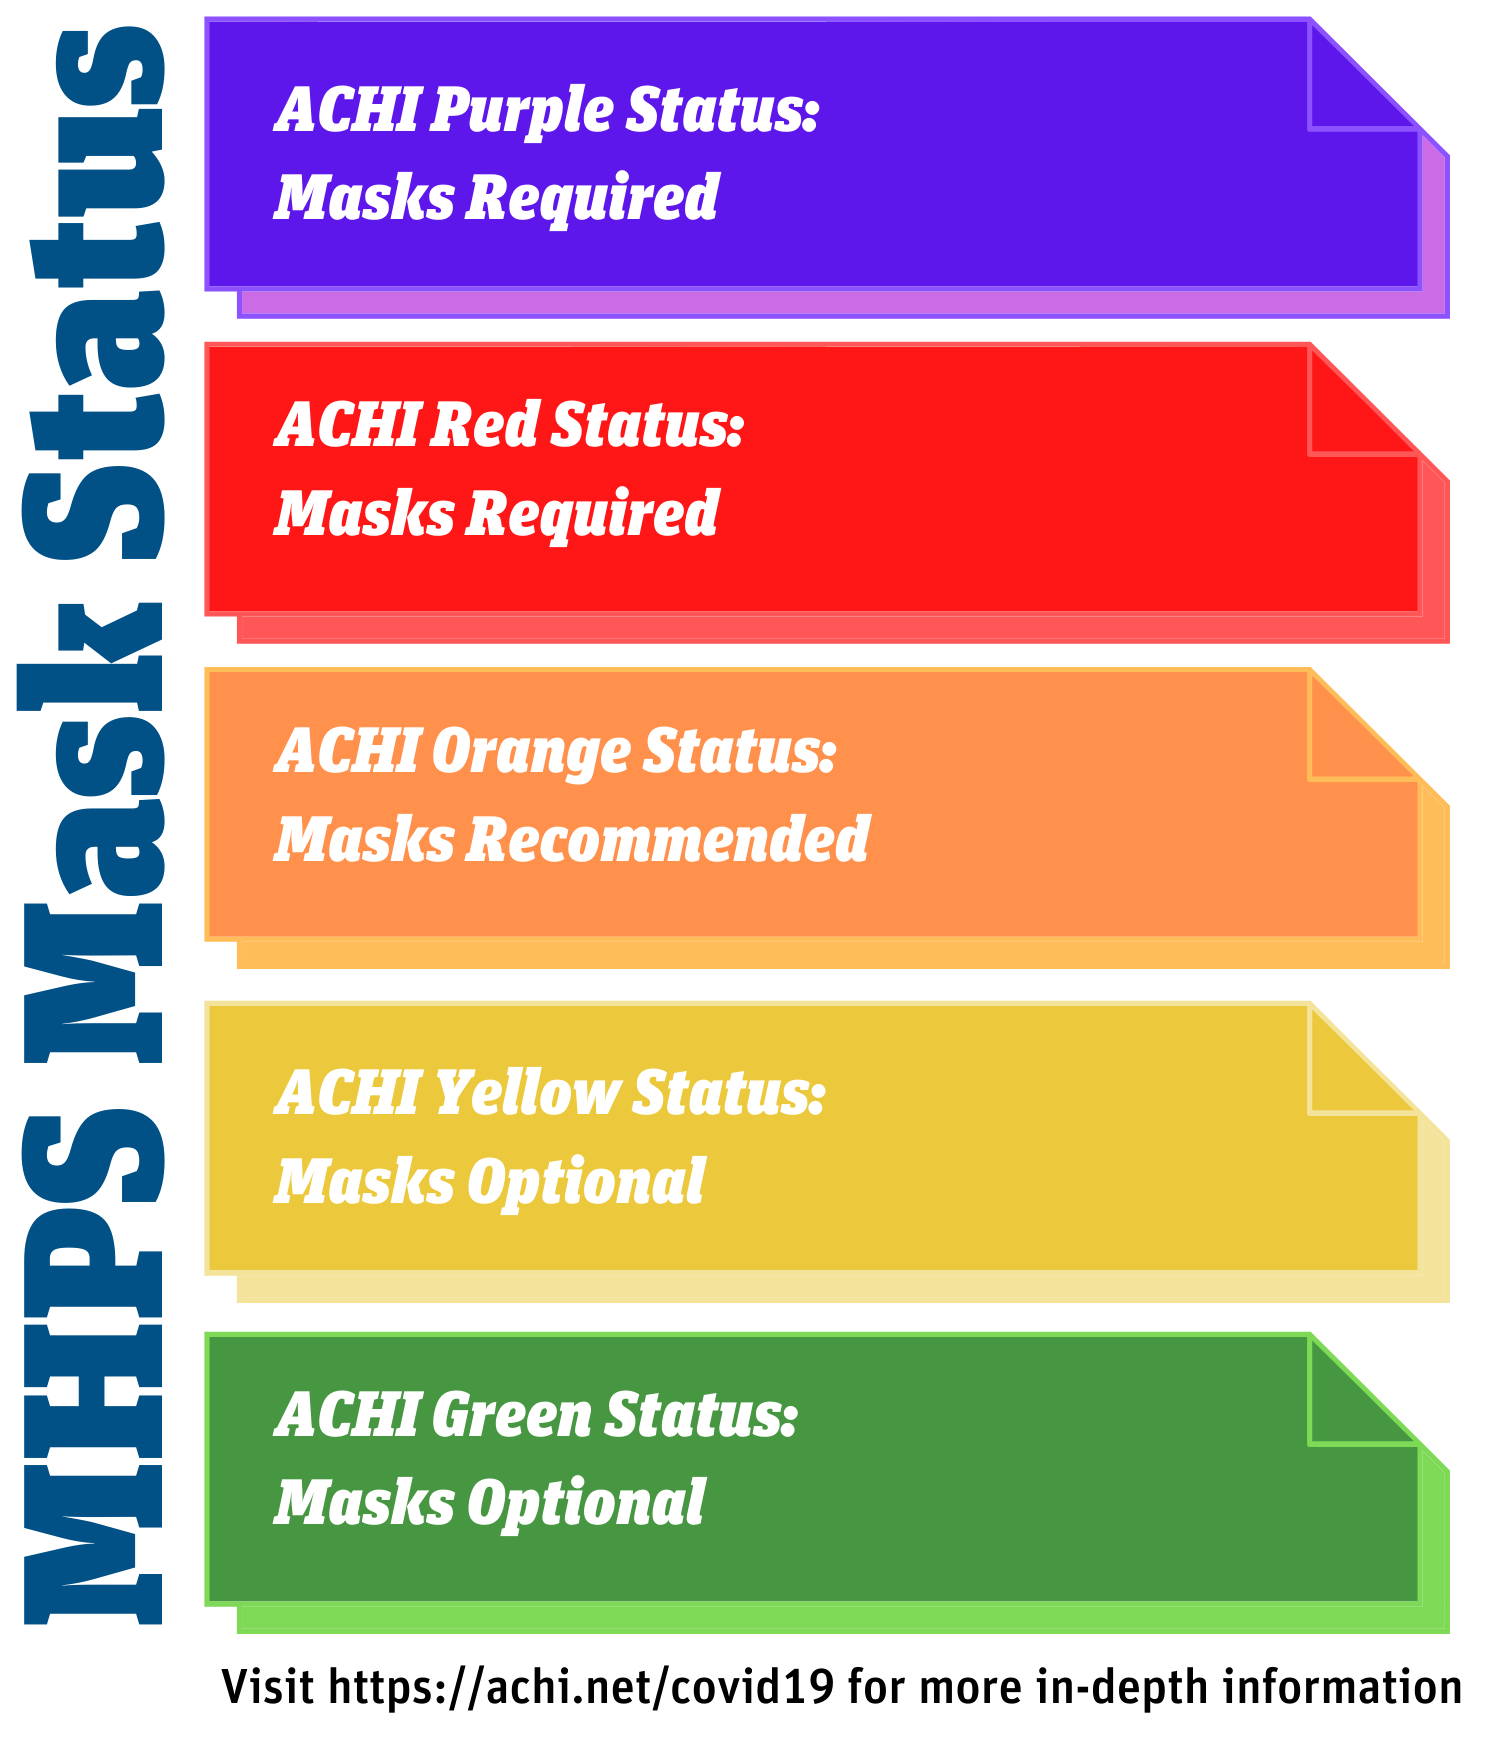 a graphic that shows MHPS will wear masks when ACHI says we're in the purple or red categories